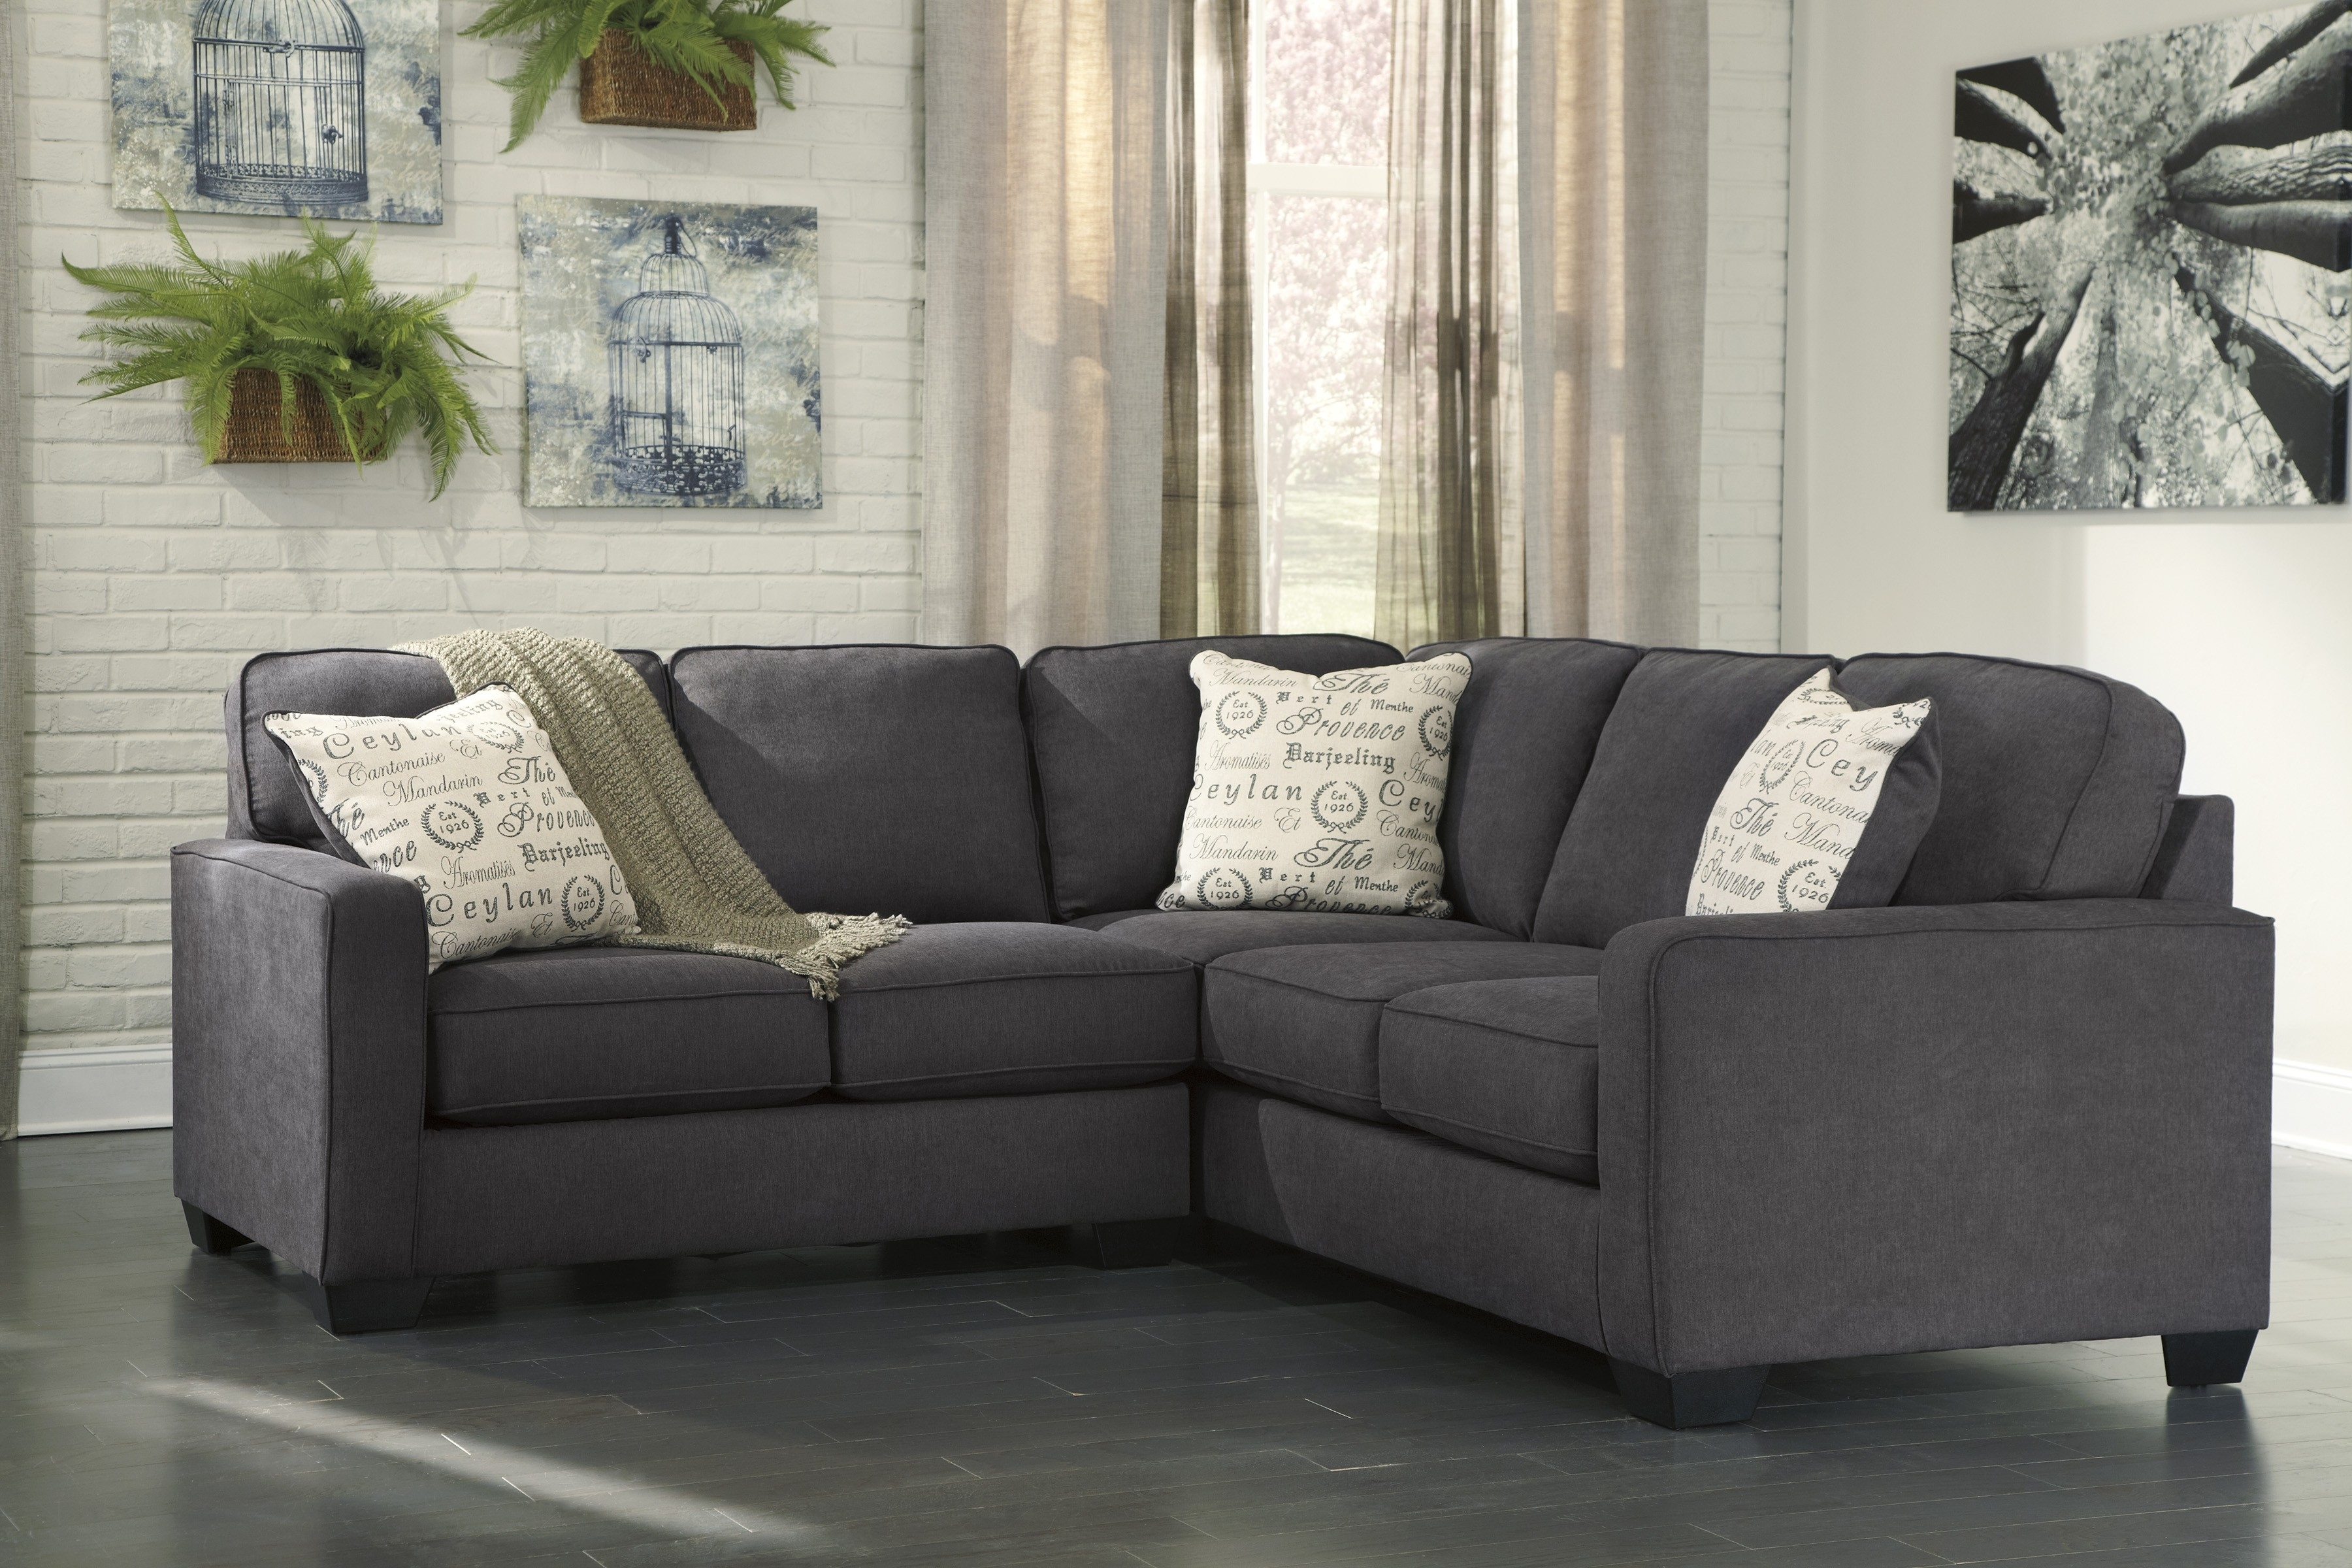 Simple Small 2 Piece Sectional Sofa 58 For Your American Made in Aurora 2 Piece Sectionals (Image 29 of 30)